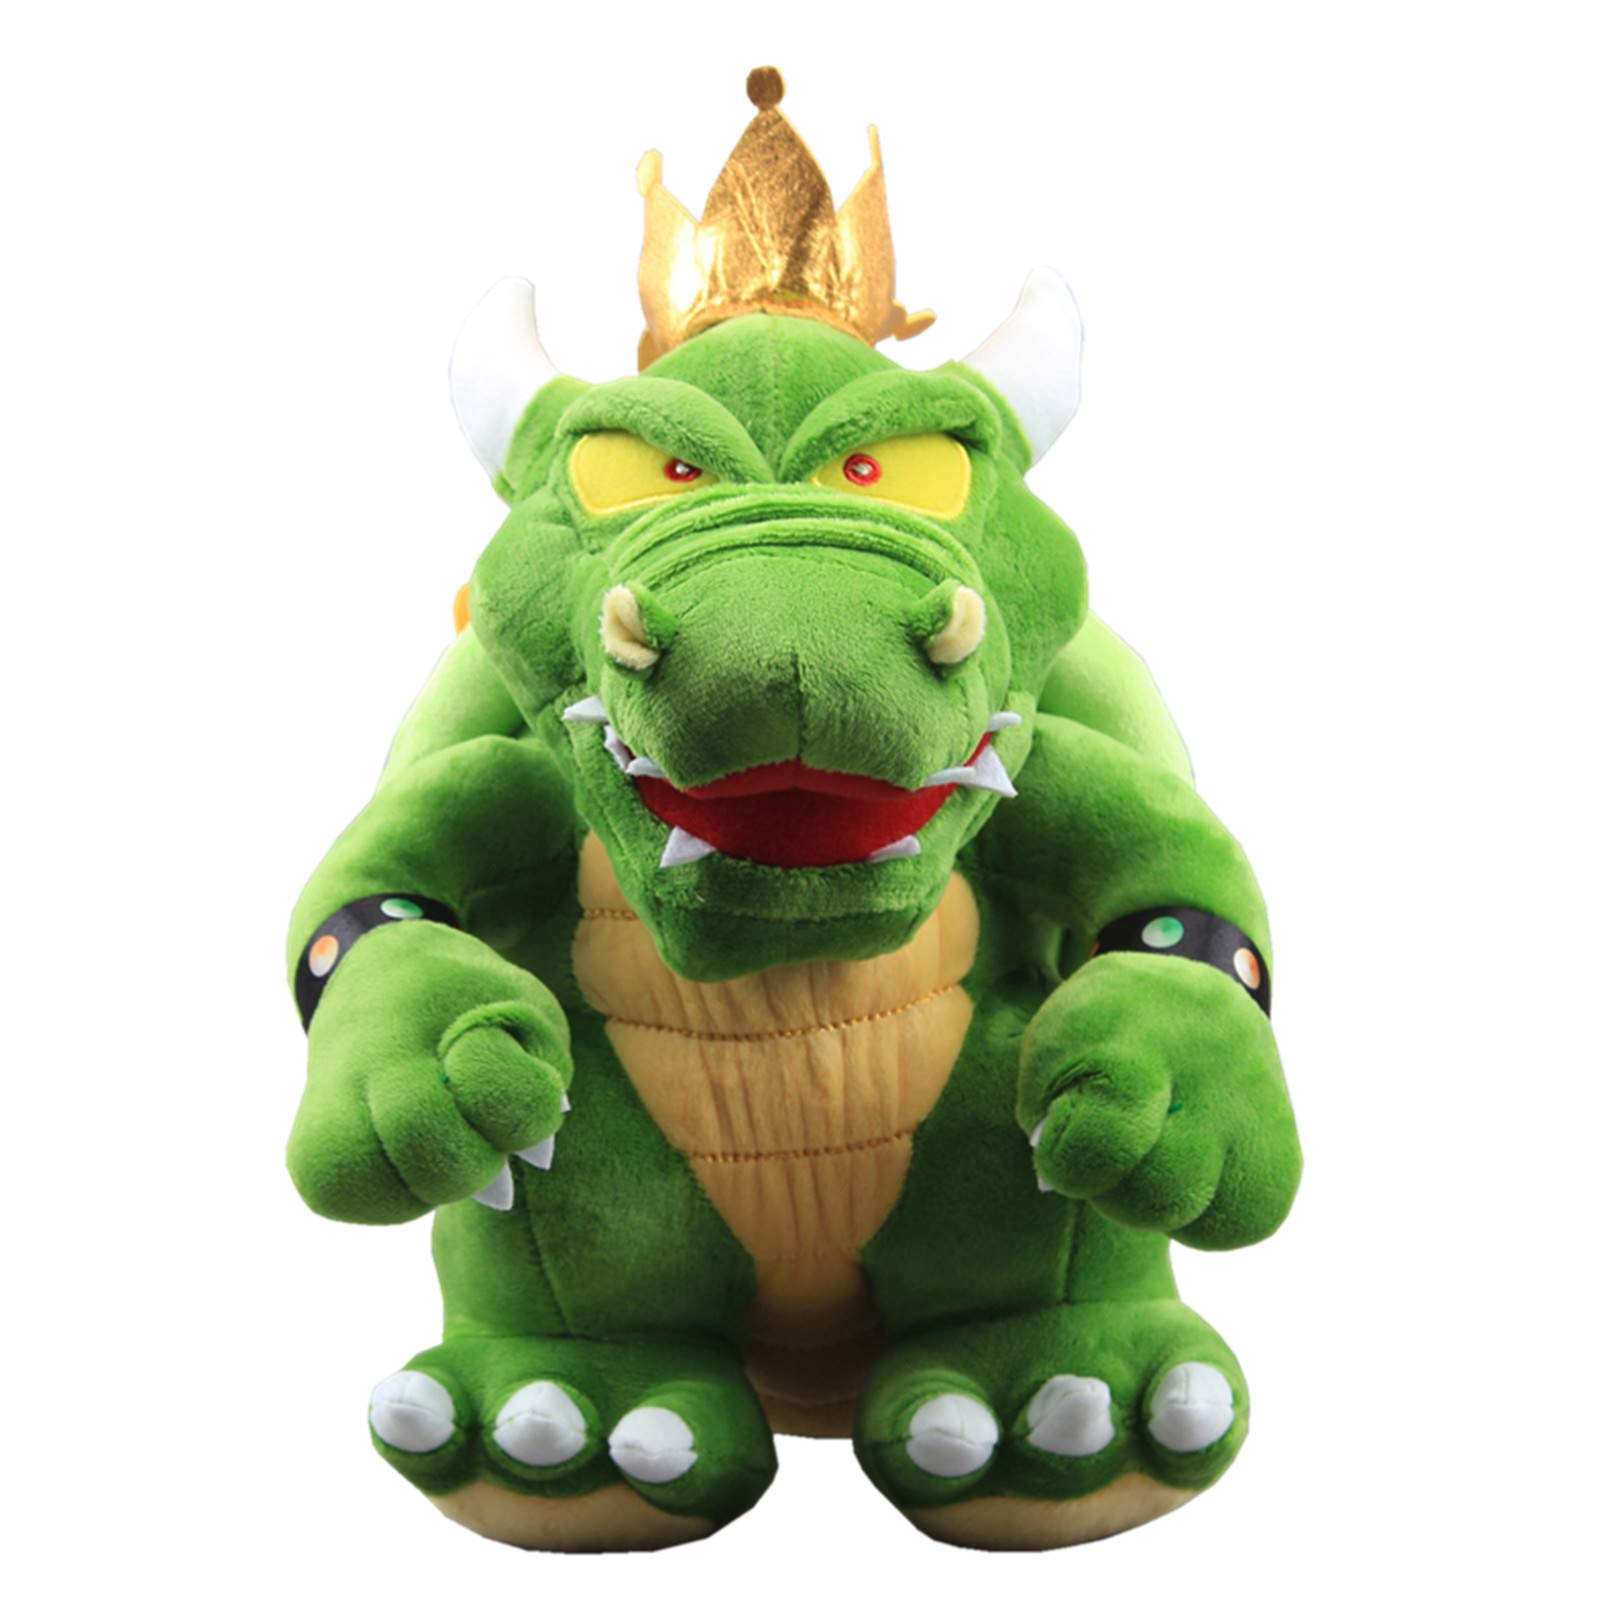 uiuoutoy Super Mario Bros. 3 King Koopa Bowser Plush 12'' by uiuoutoy